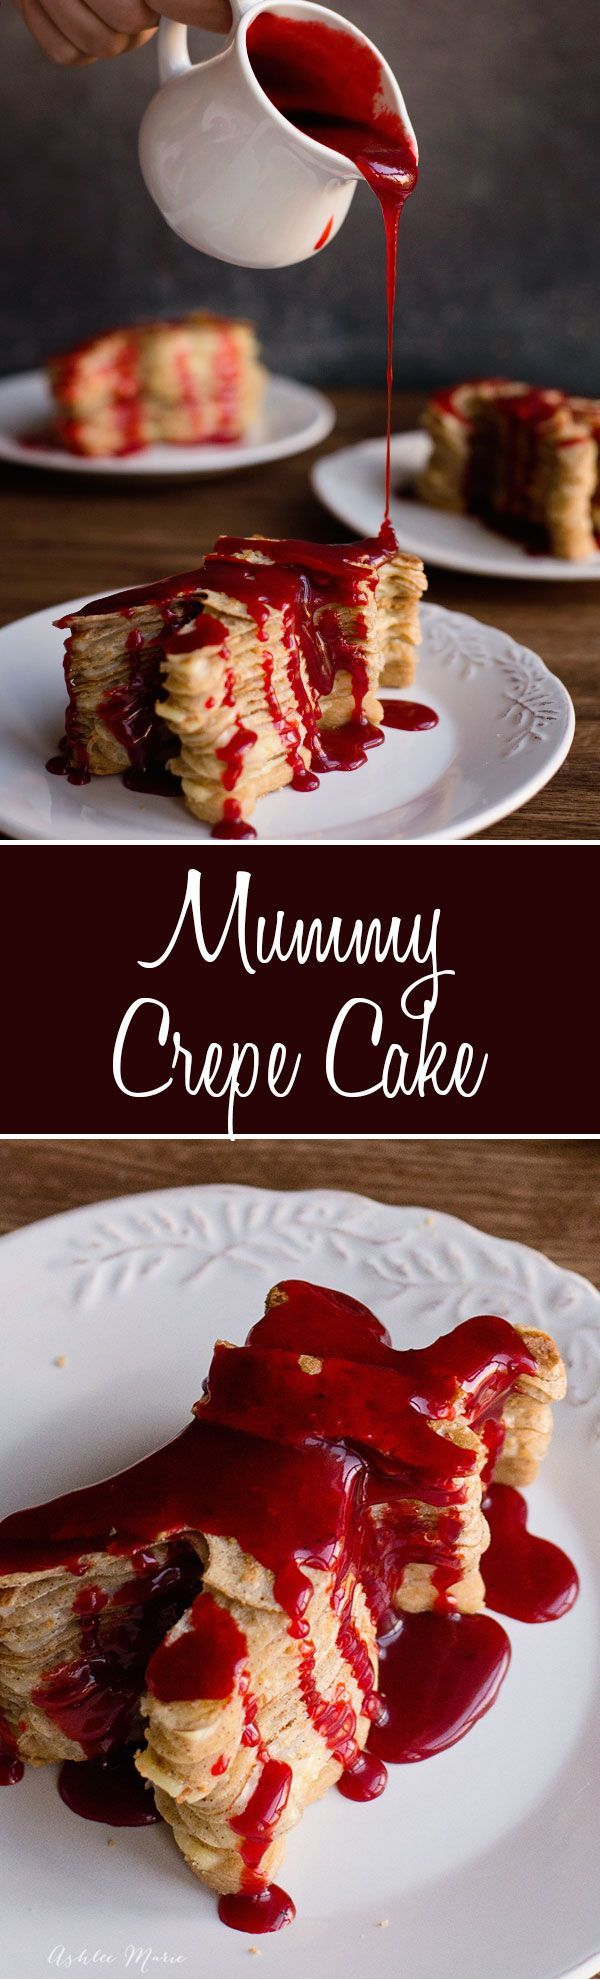 Bloody Mummy Crepe Cakes recipe and Video Tutorial, Layers of cinnamon crepes filled with pastry cream and a shortbread crumble and topped with some blood red buttermilk syrup. #halloween